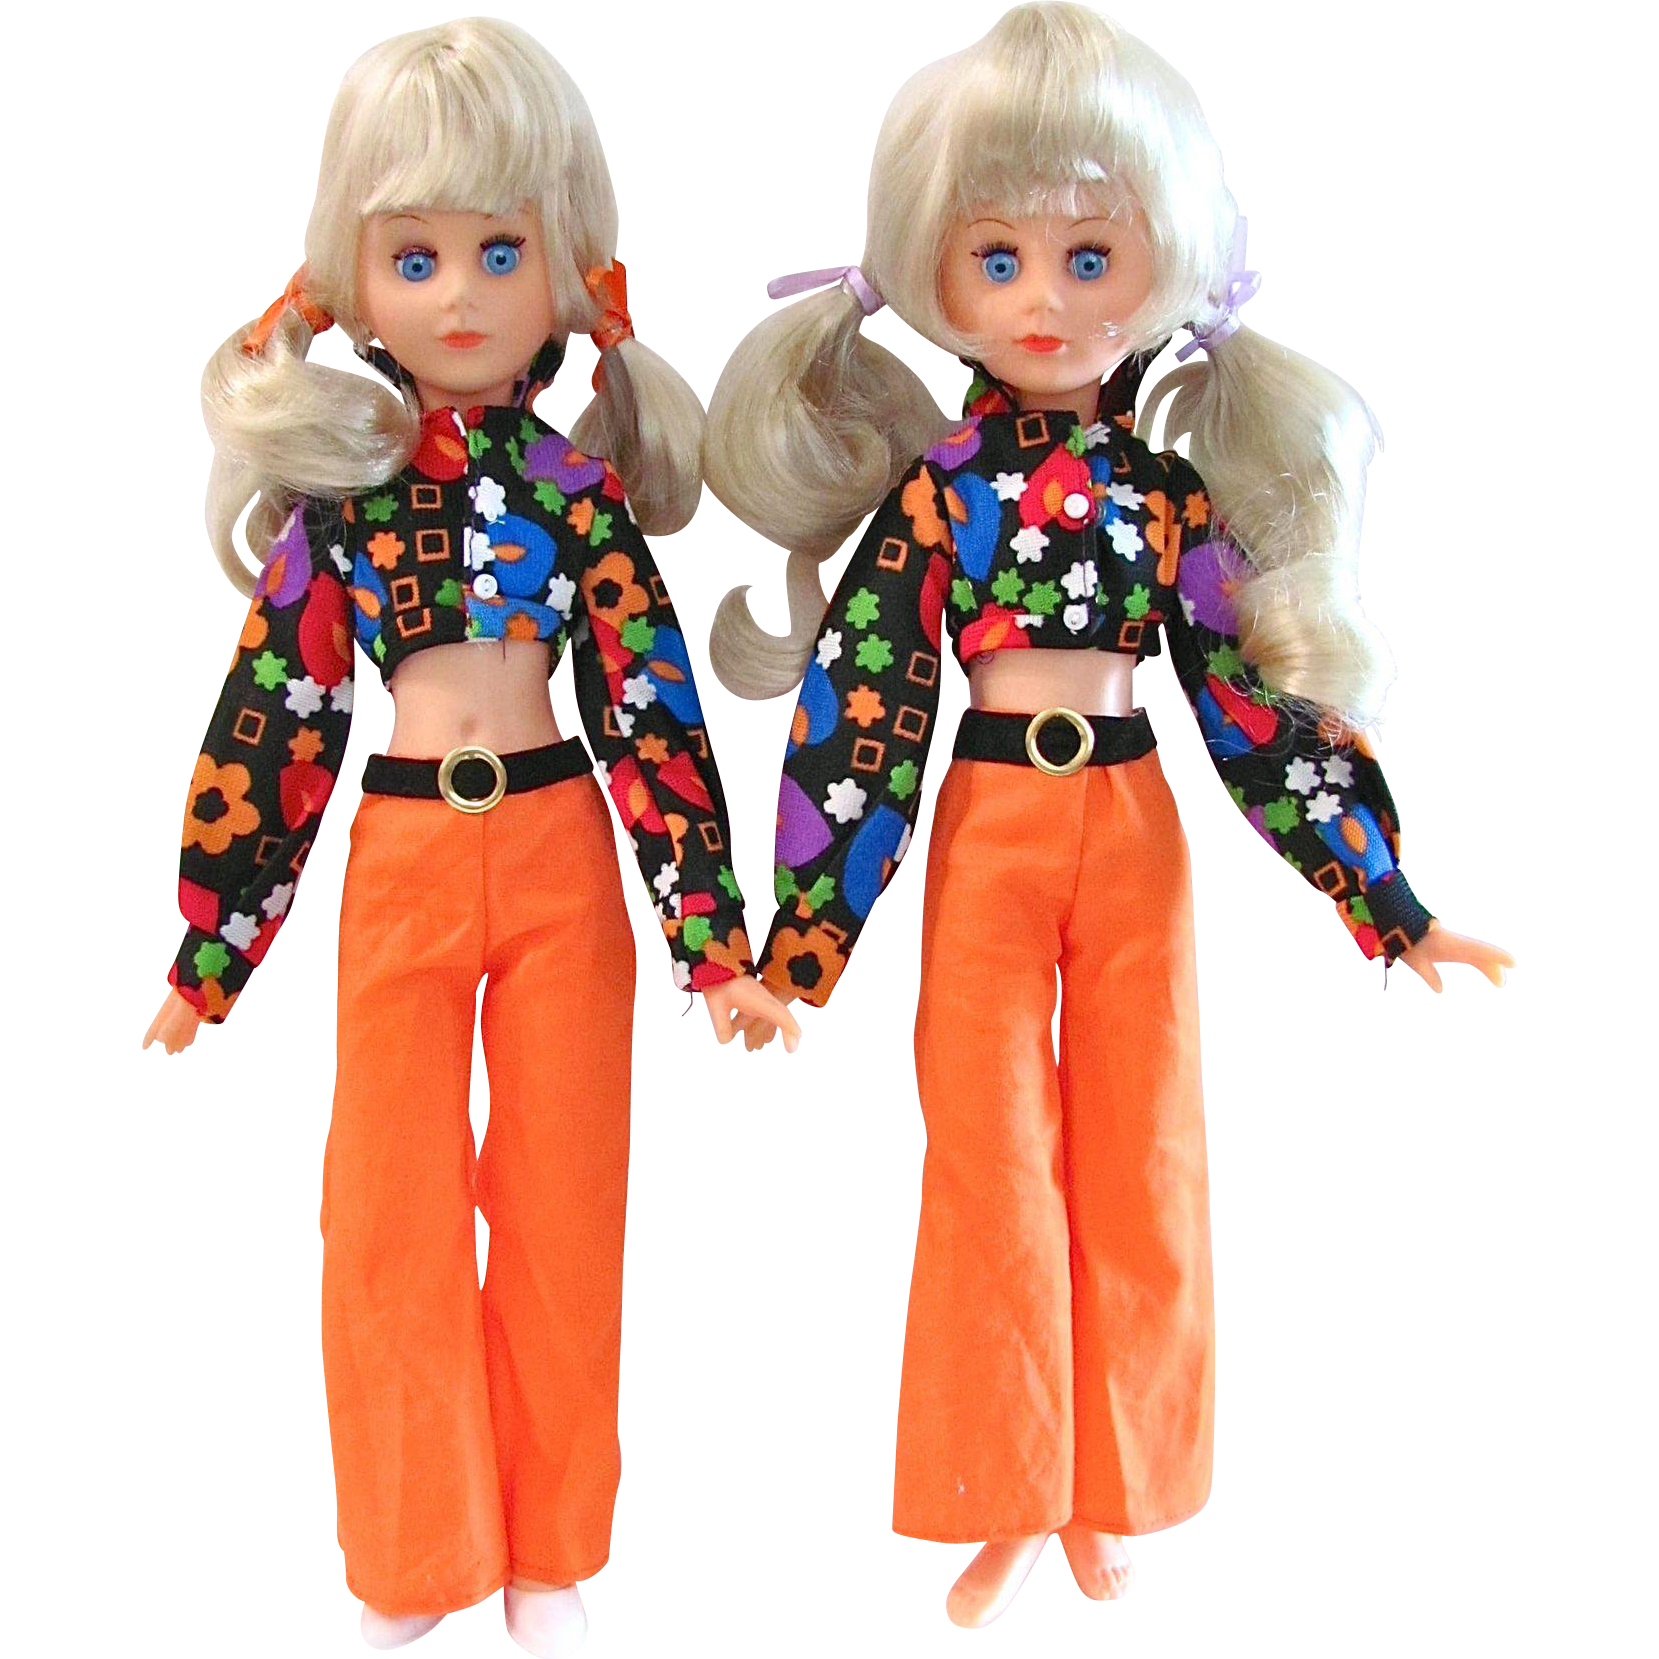 Fashion Doll Twins, Groovy Mod Platinum Blond Pair, 15-Inch Jointed Vinyl, Vintage 1960s